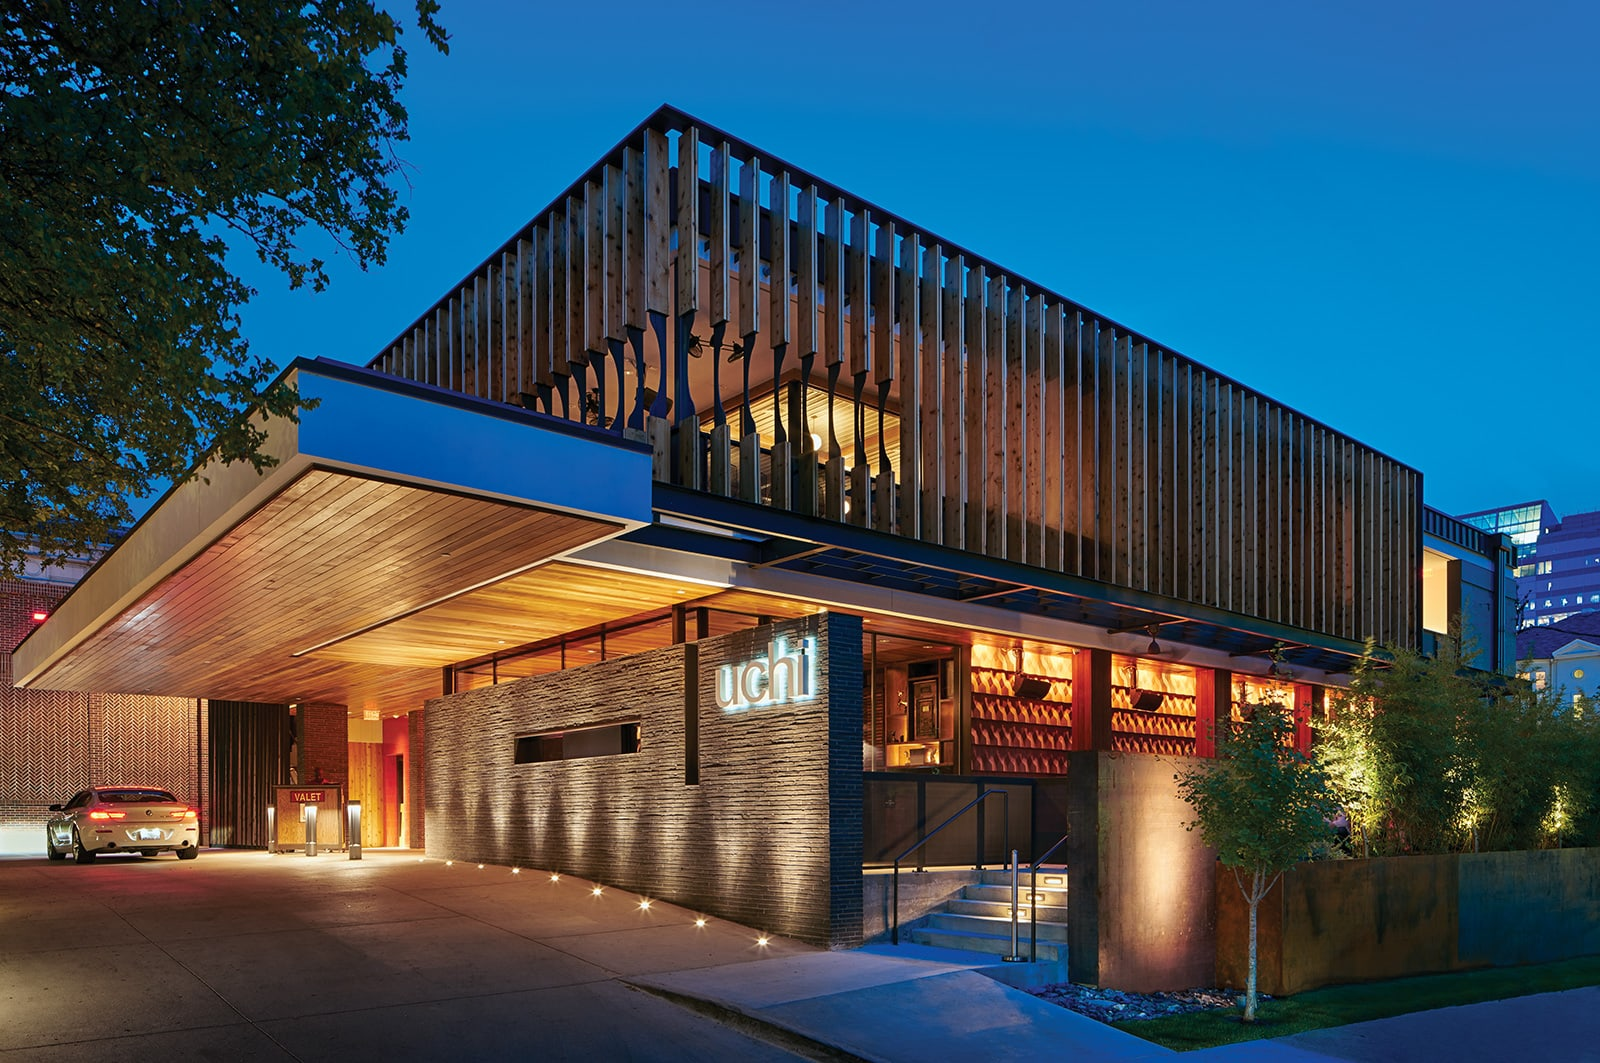 Uchi Dallas